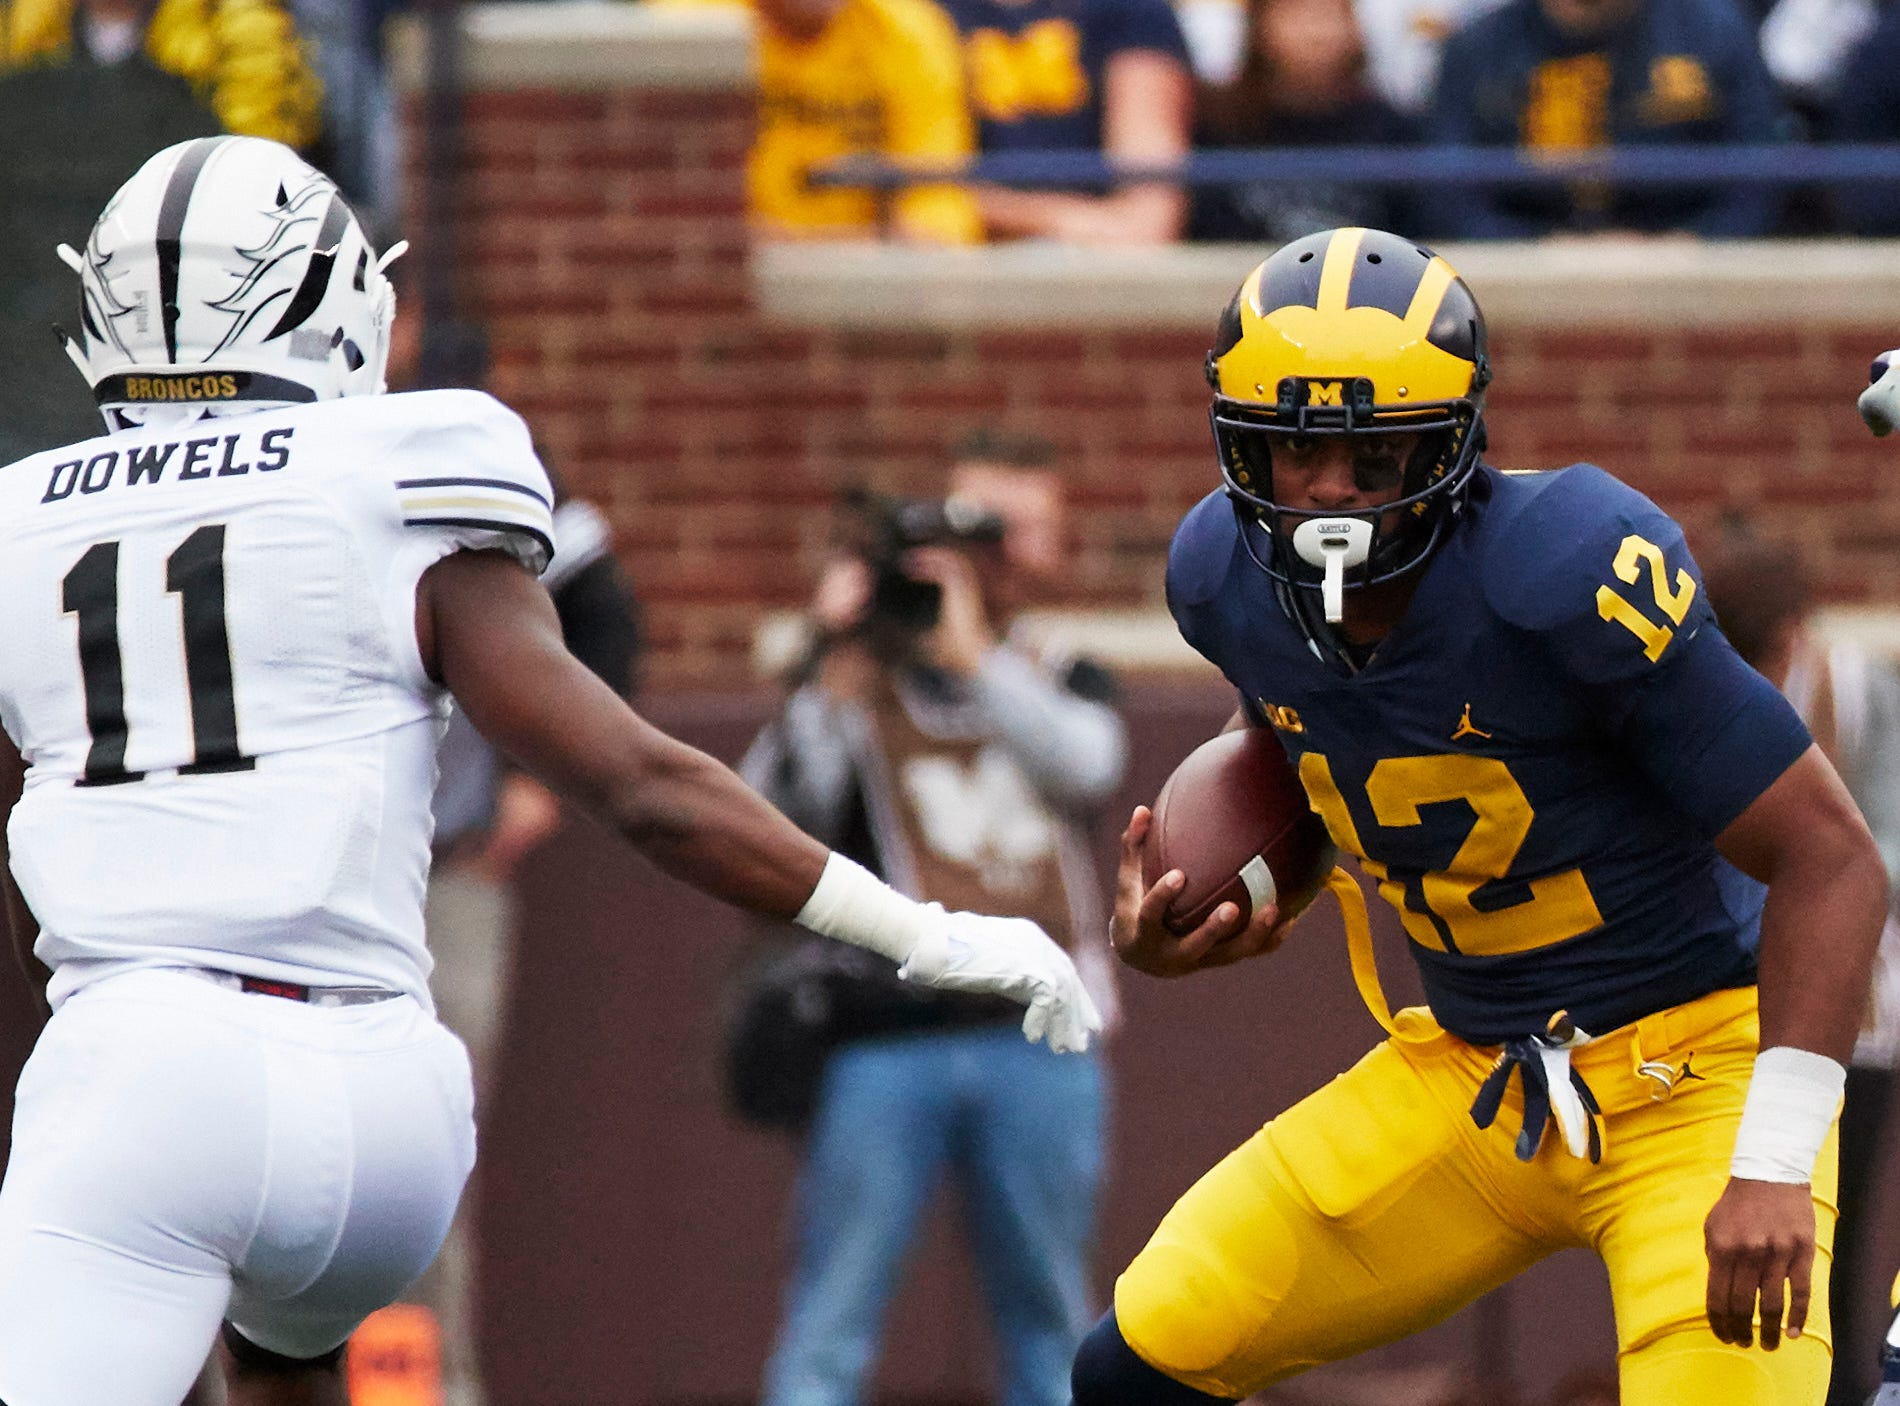 Sep 8, 2018; Ann Arbor, MI, USA; Michigan Wolverines running back Chris Evans (12) runs the ball against Western Michigan Broncos defensive back Juwan Dowels (11) in the first half at Michigan Stadium. Mandatory Credit: Rick Osentoski-USA TODAY Sports